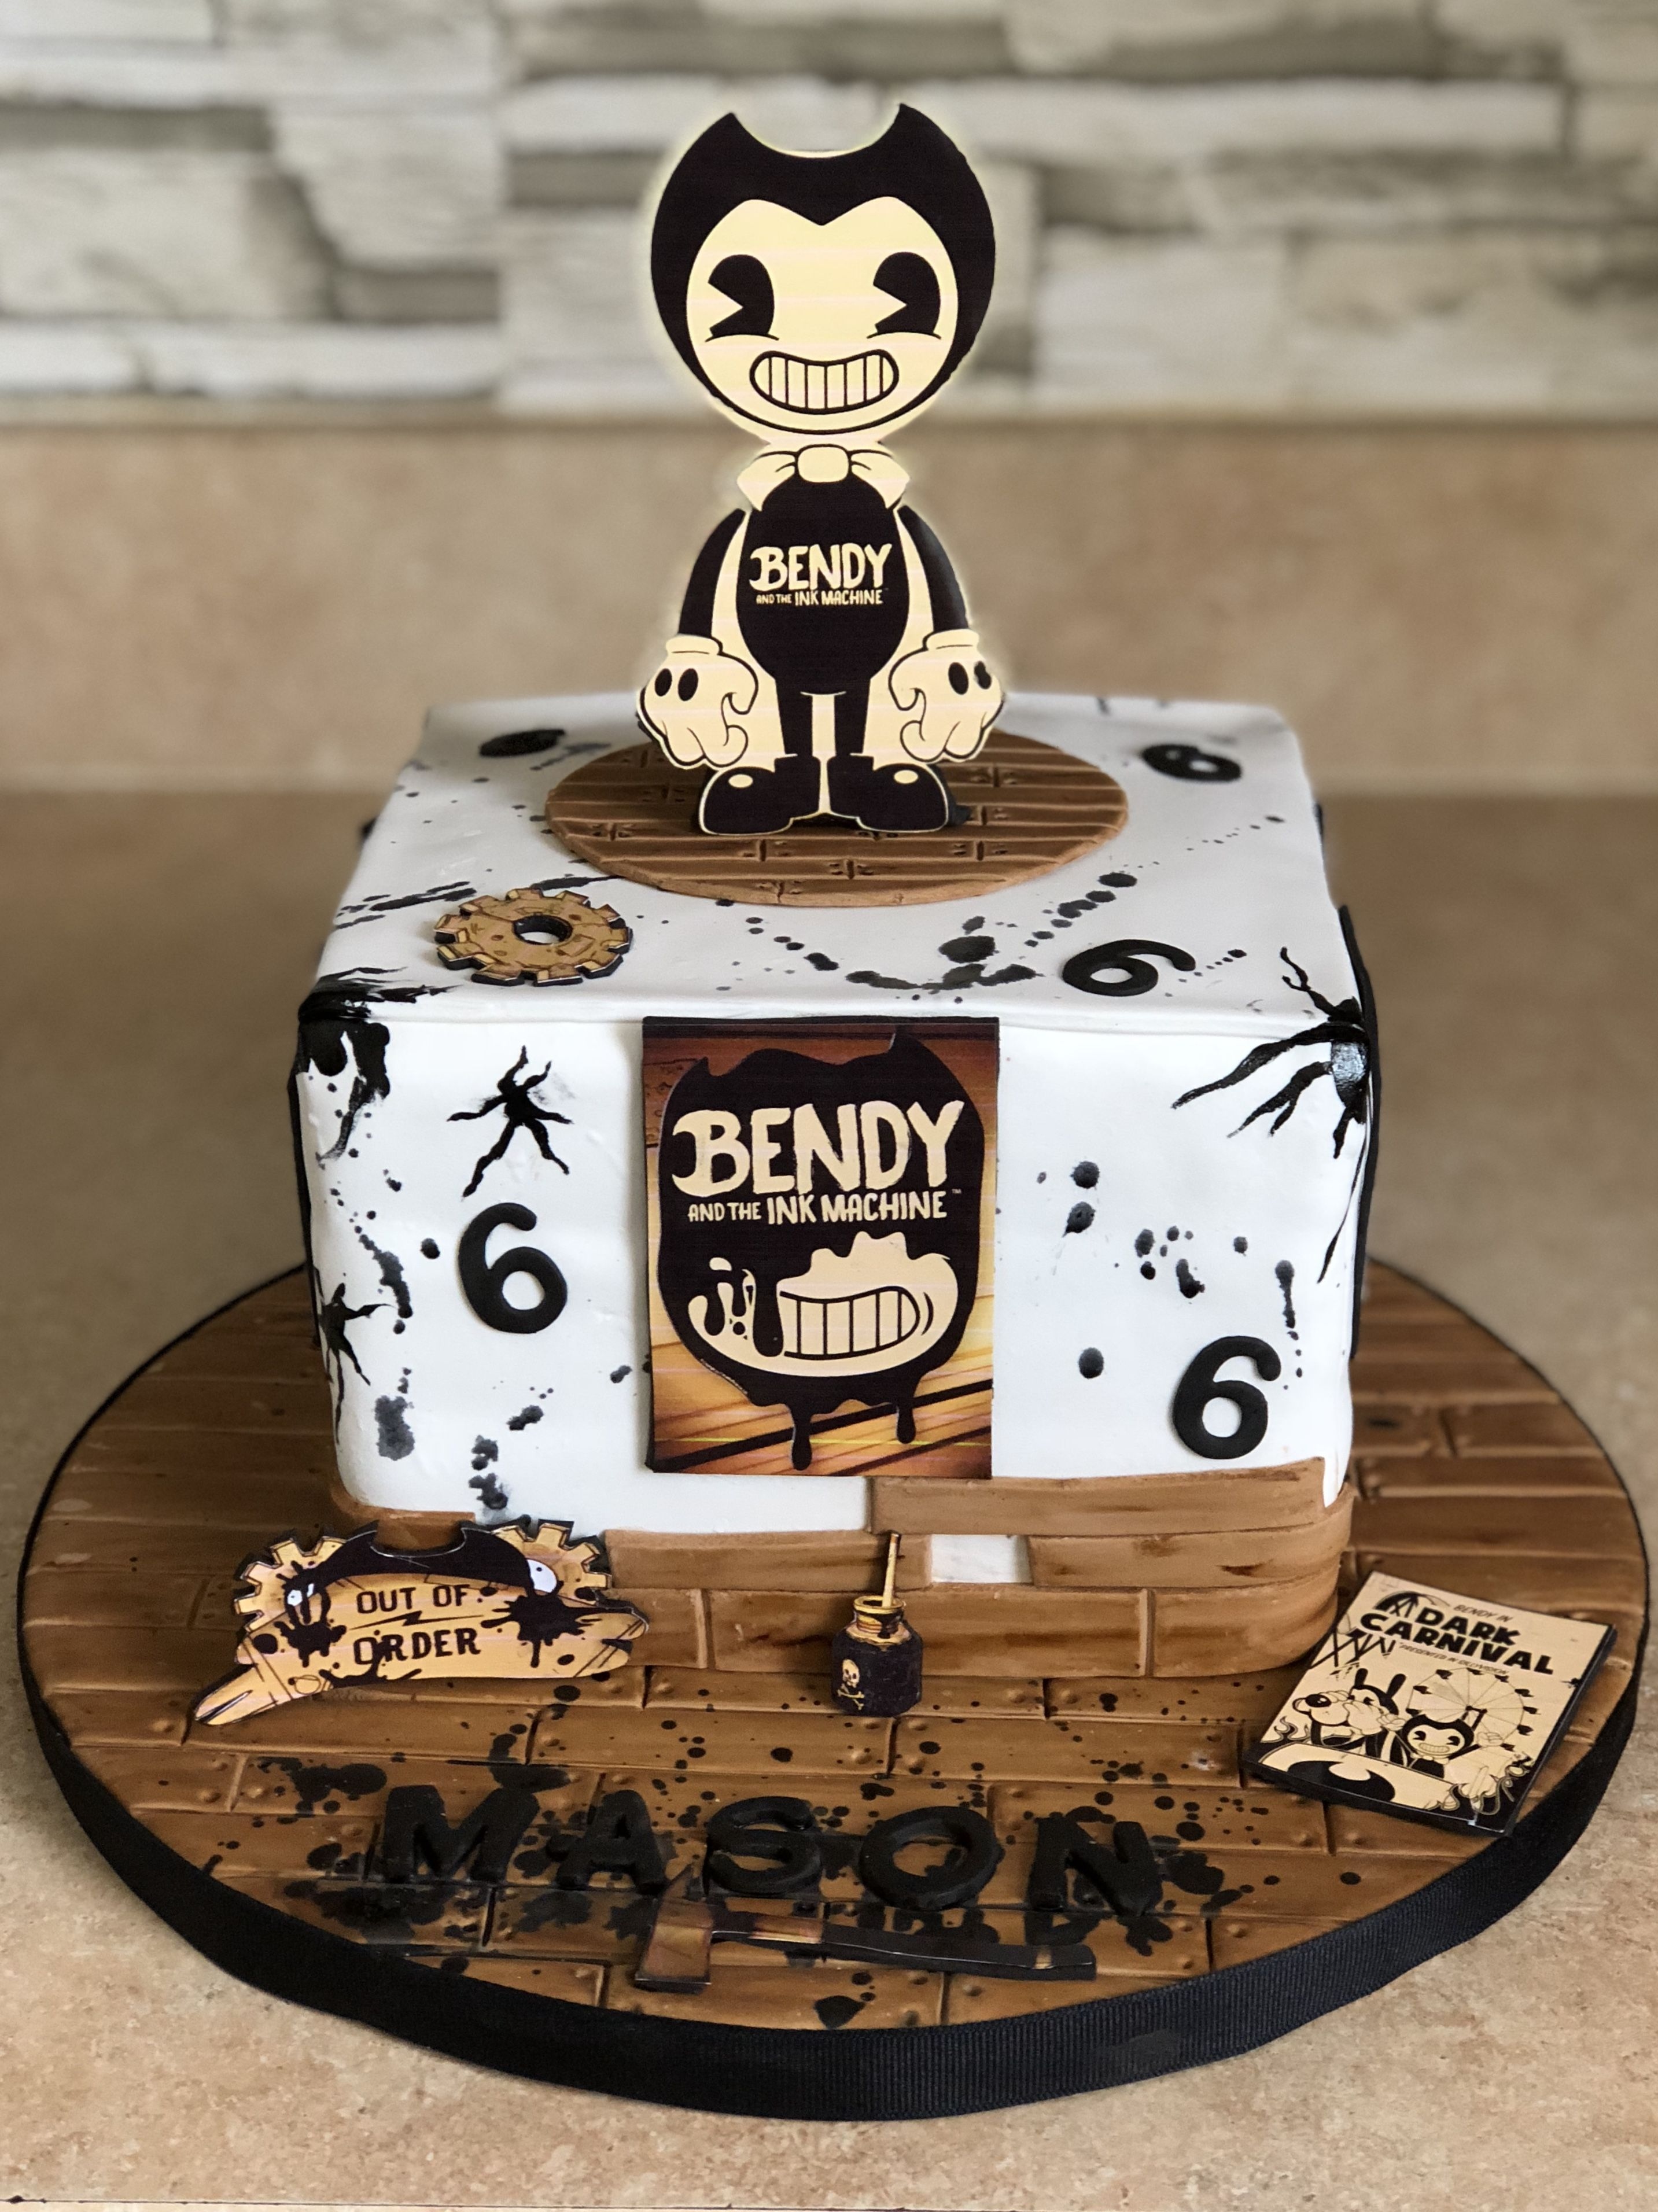 Bendy and the ink machine cake | Cakes | Bendy, the Ink ...